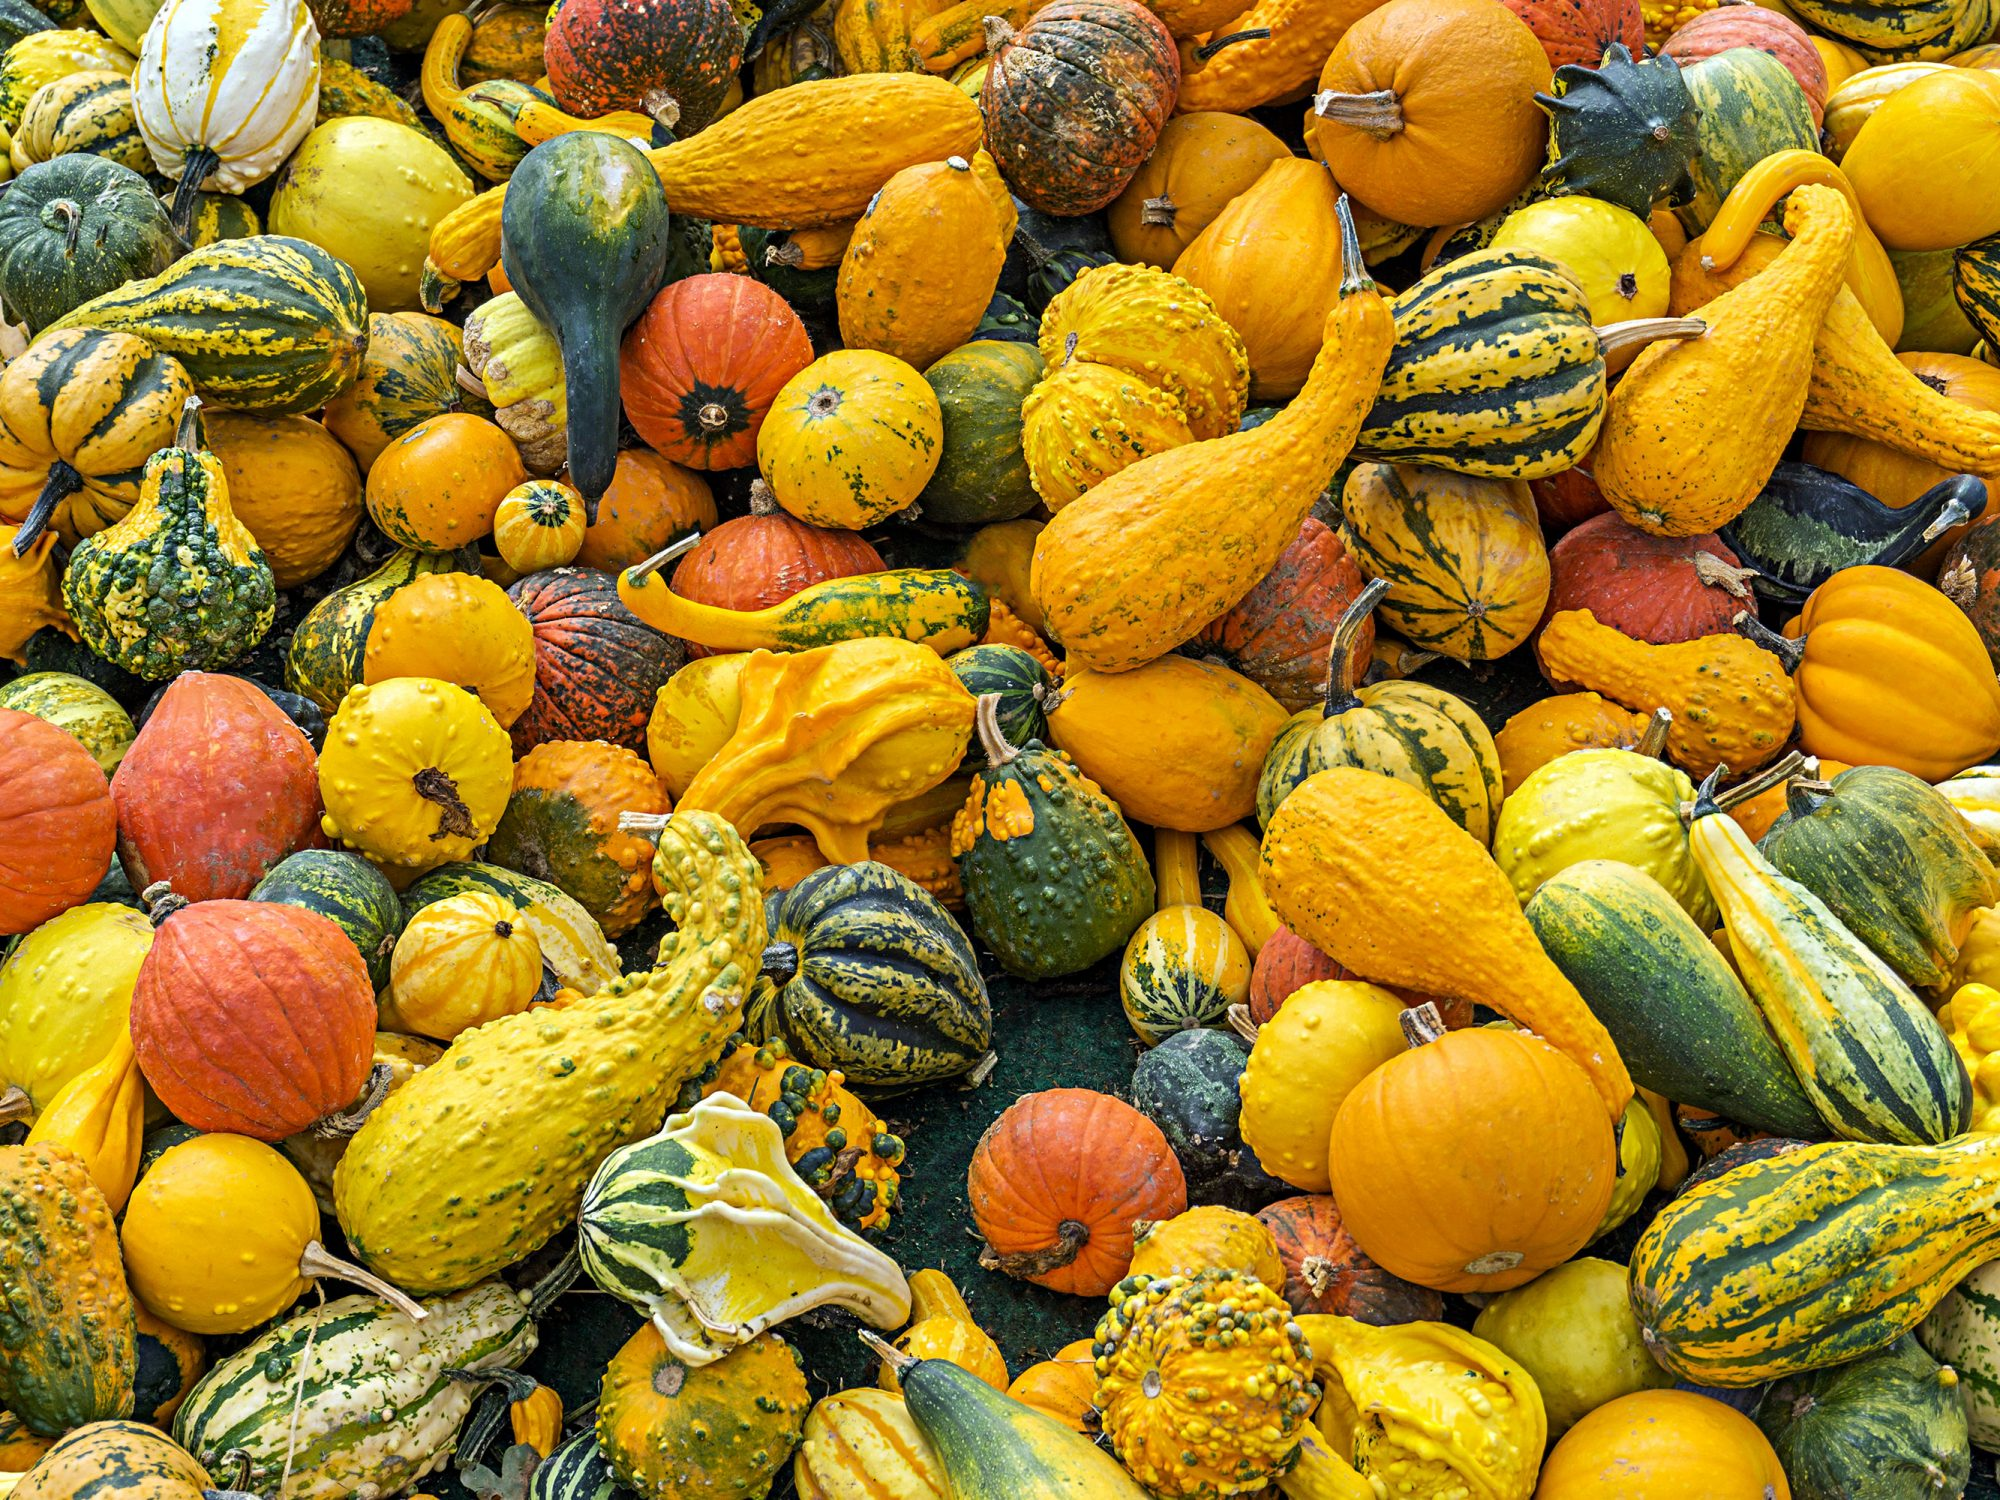 Can You Eat The Skin on All Types of Squash? | MyRecipes